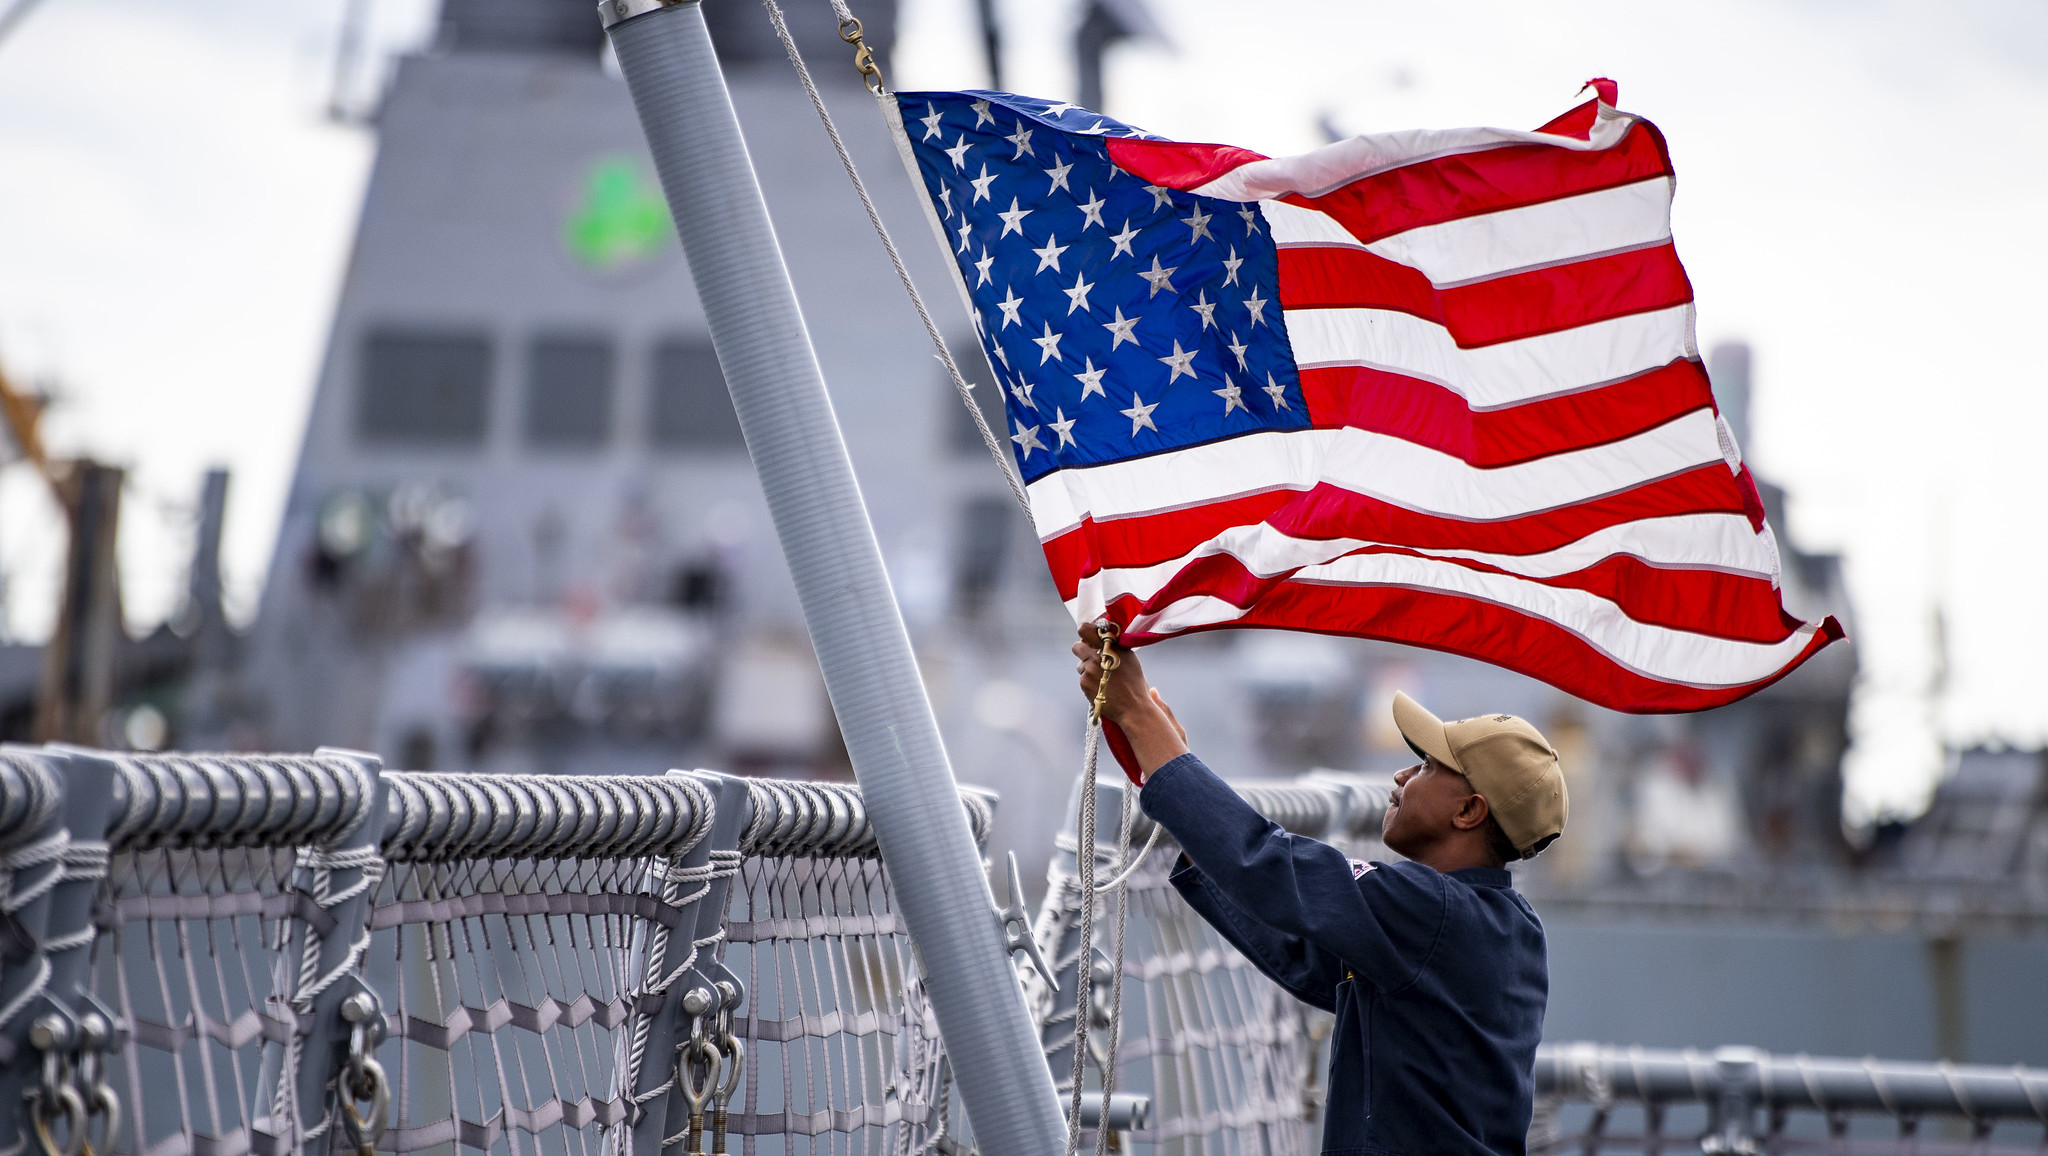 A sailor assigned to the Freedom-class variant littoral combat ship USS Billings (LCS 15) lowers the American flag Aug. 30, 2019, as the ship get underway from Naval Station Mayport. The commander of the U.S. 4th Fleet ordered all U.S. Navy ships homeported in the area to sortie ahead of Hurricane Dorian. (Mass Communication Specialist 3rd Class Nathan T. Beard/Navy)